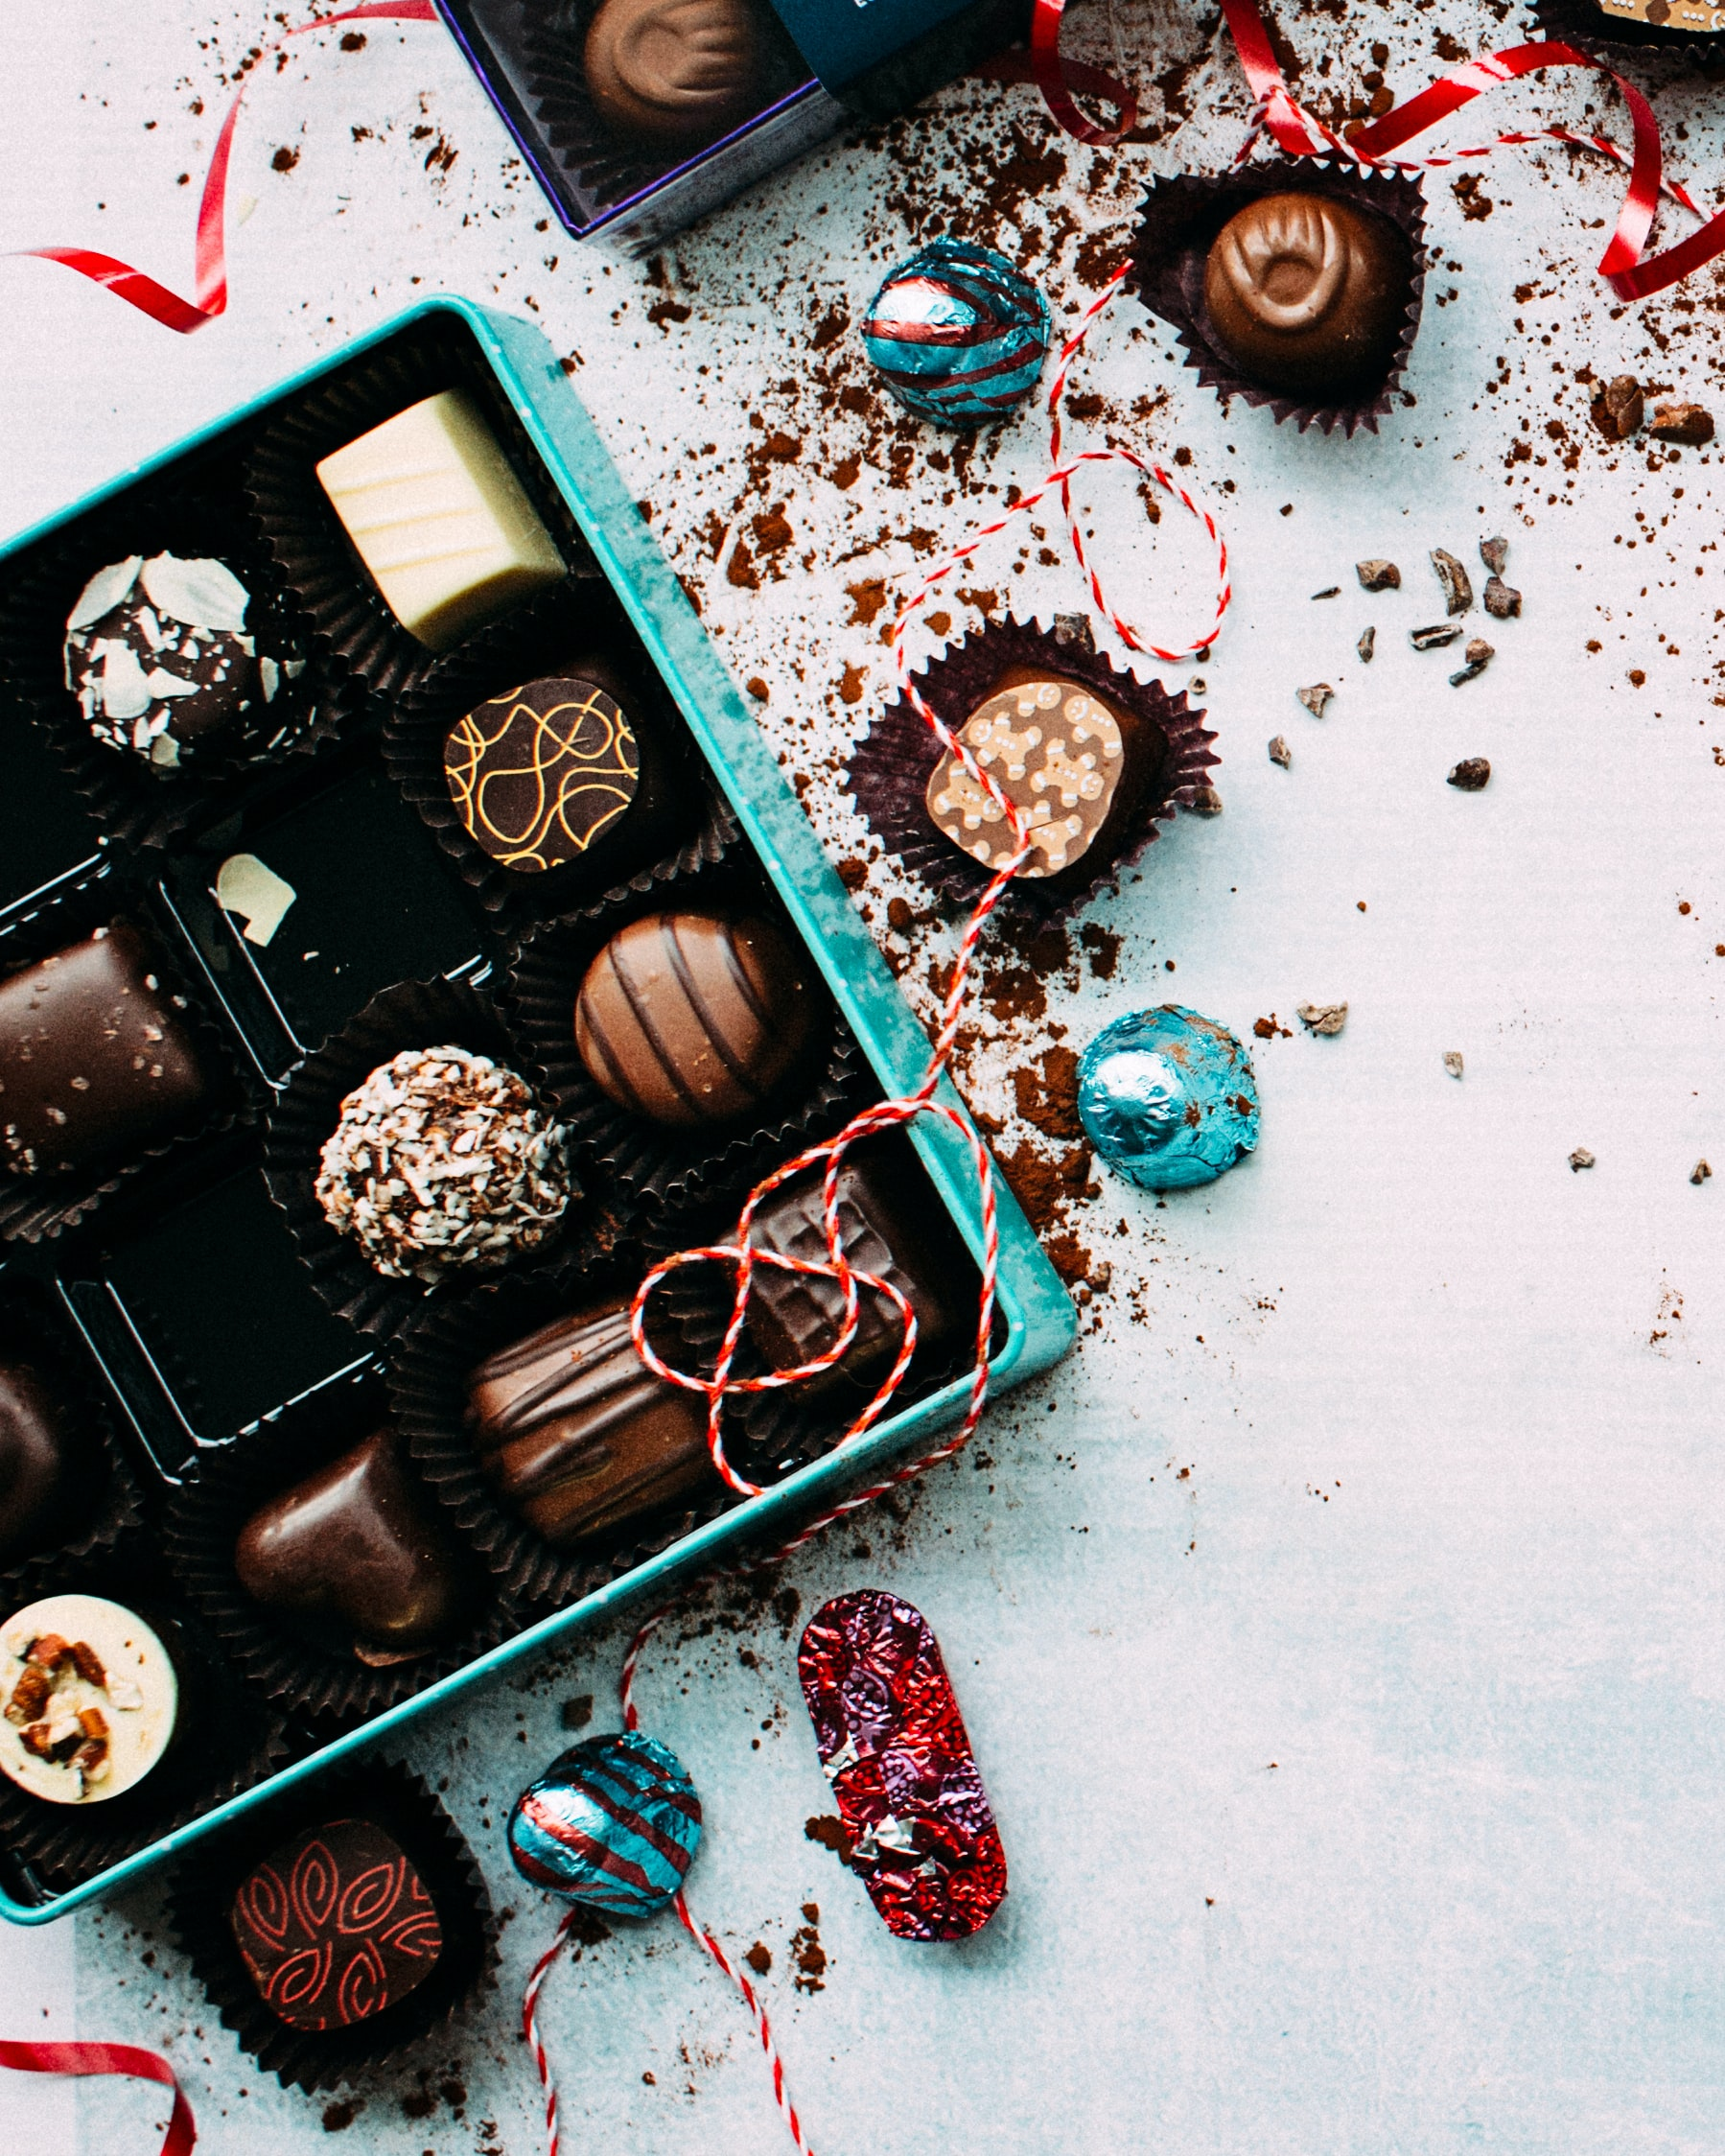 A box of assorted chocolates in different shapes and patterns